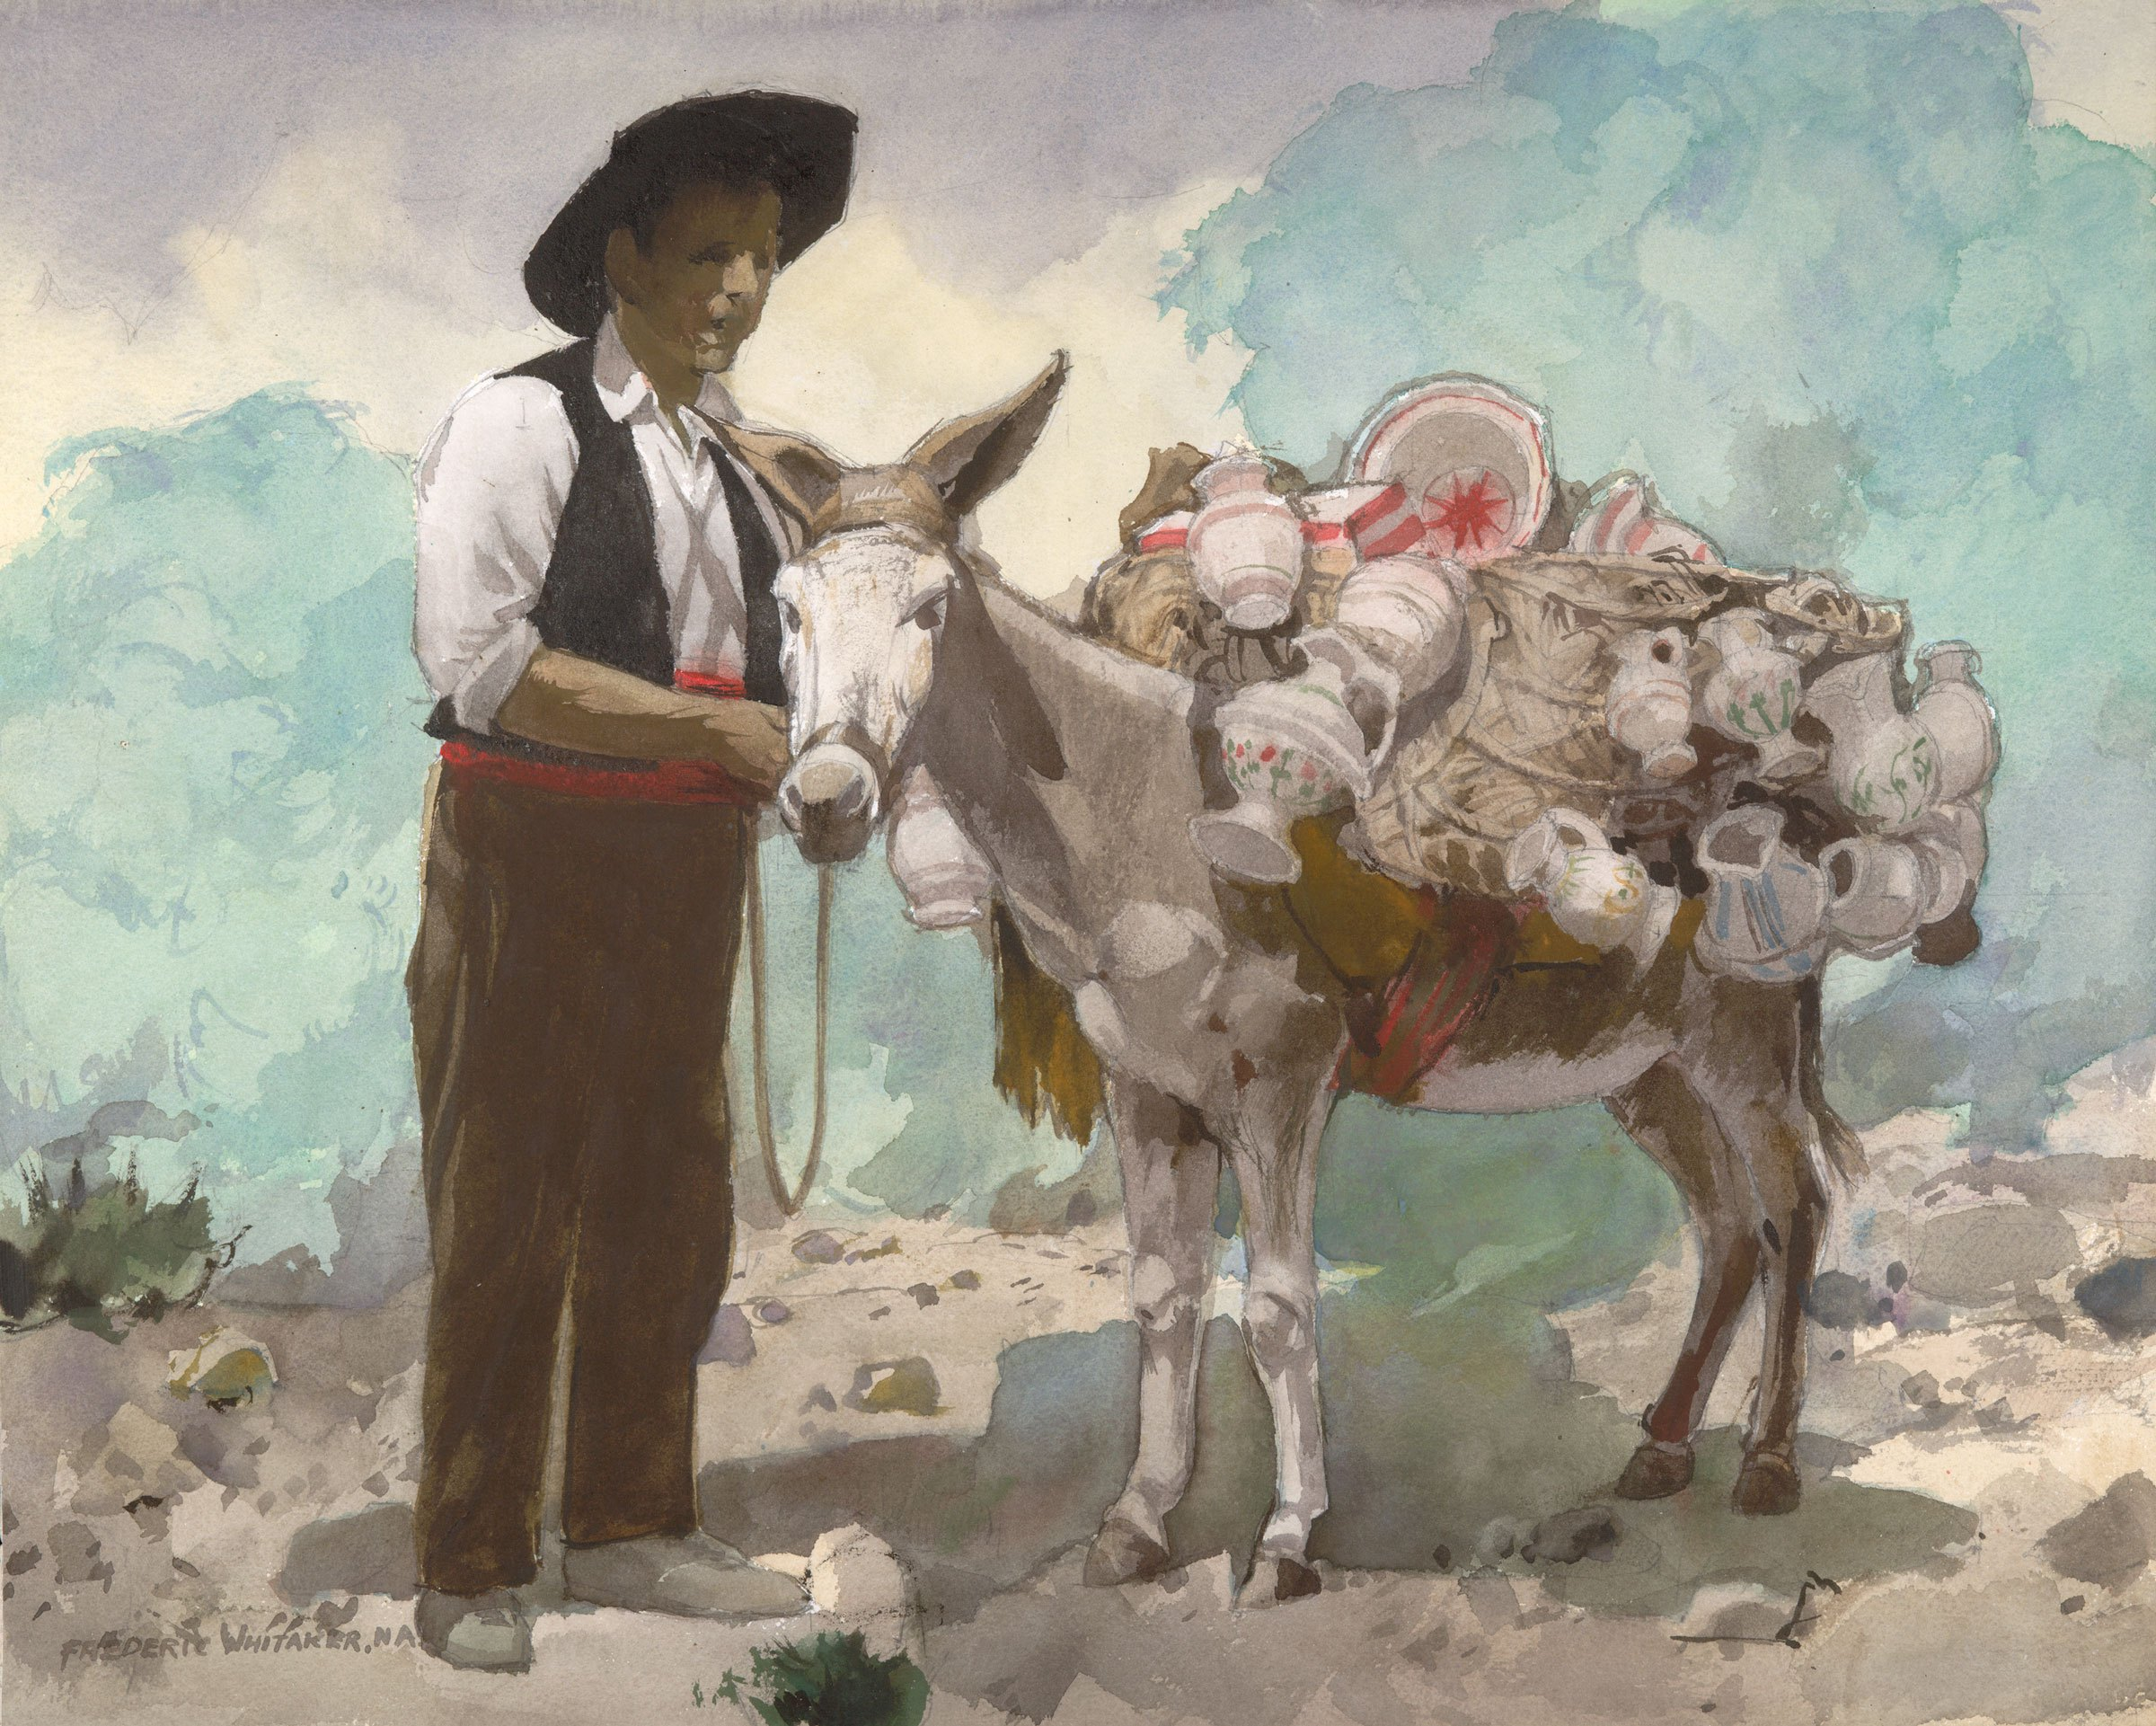 """""""Iberian, Self-Employed"""" 1972 © Frederic Whitaker N.A. 22x27.5 inches Watercolor"""